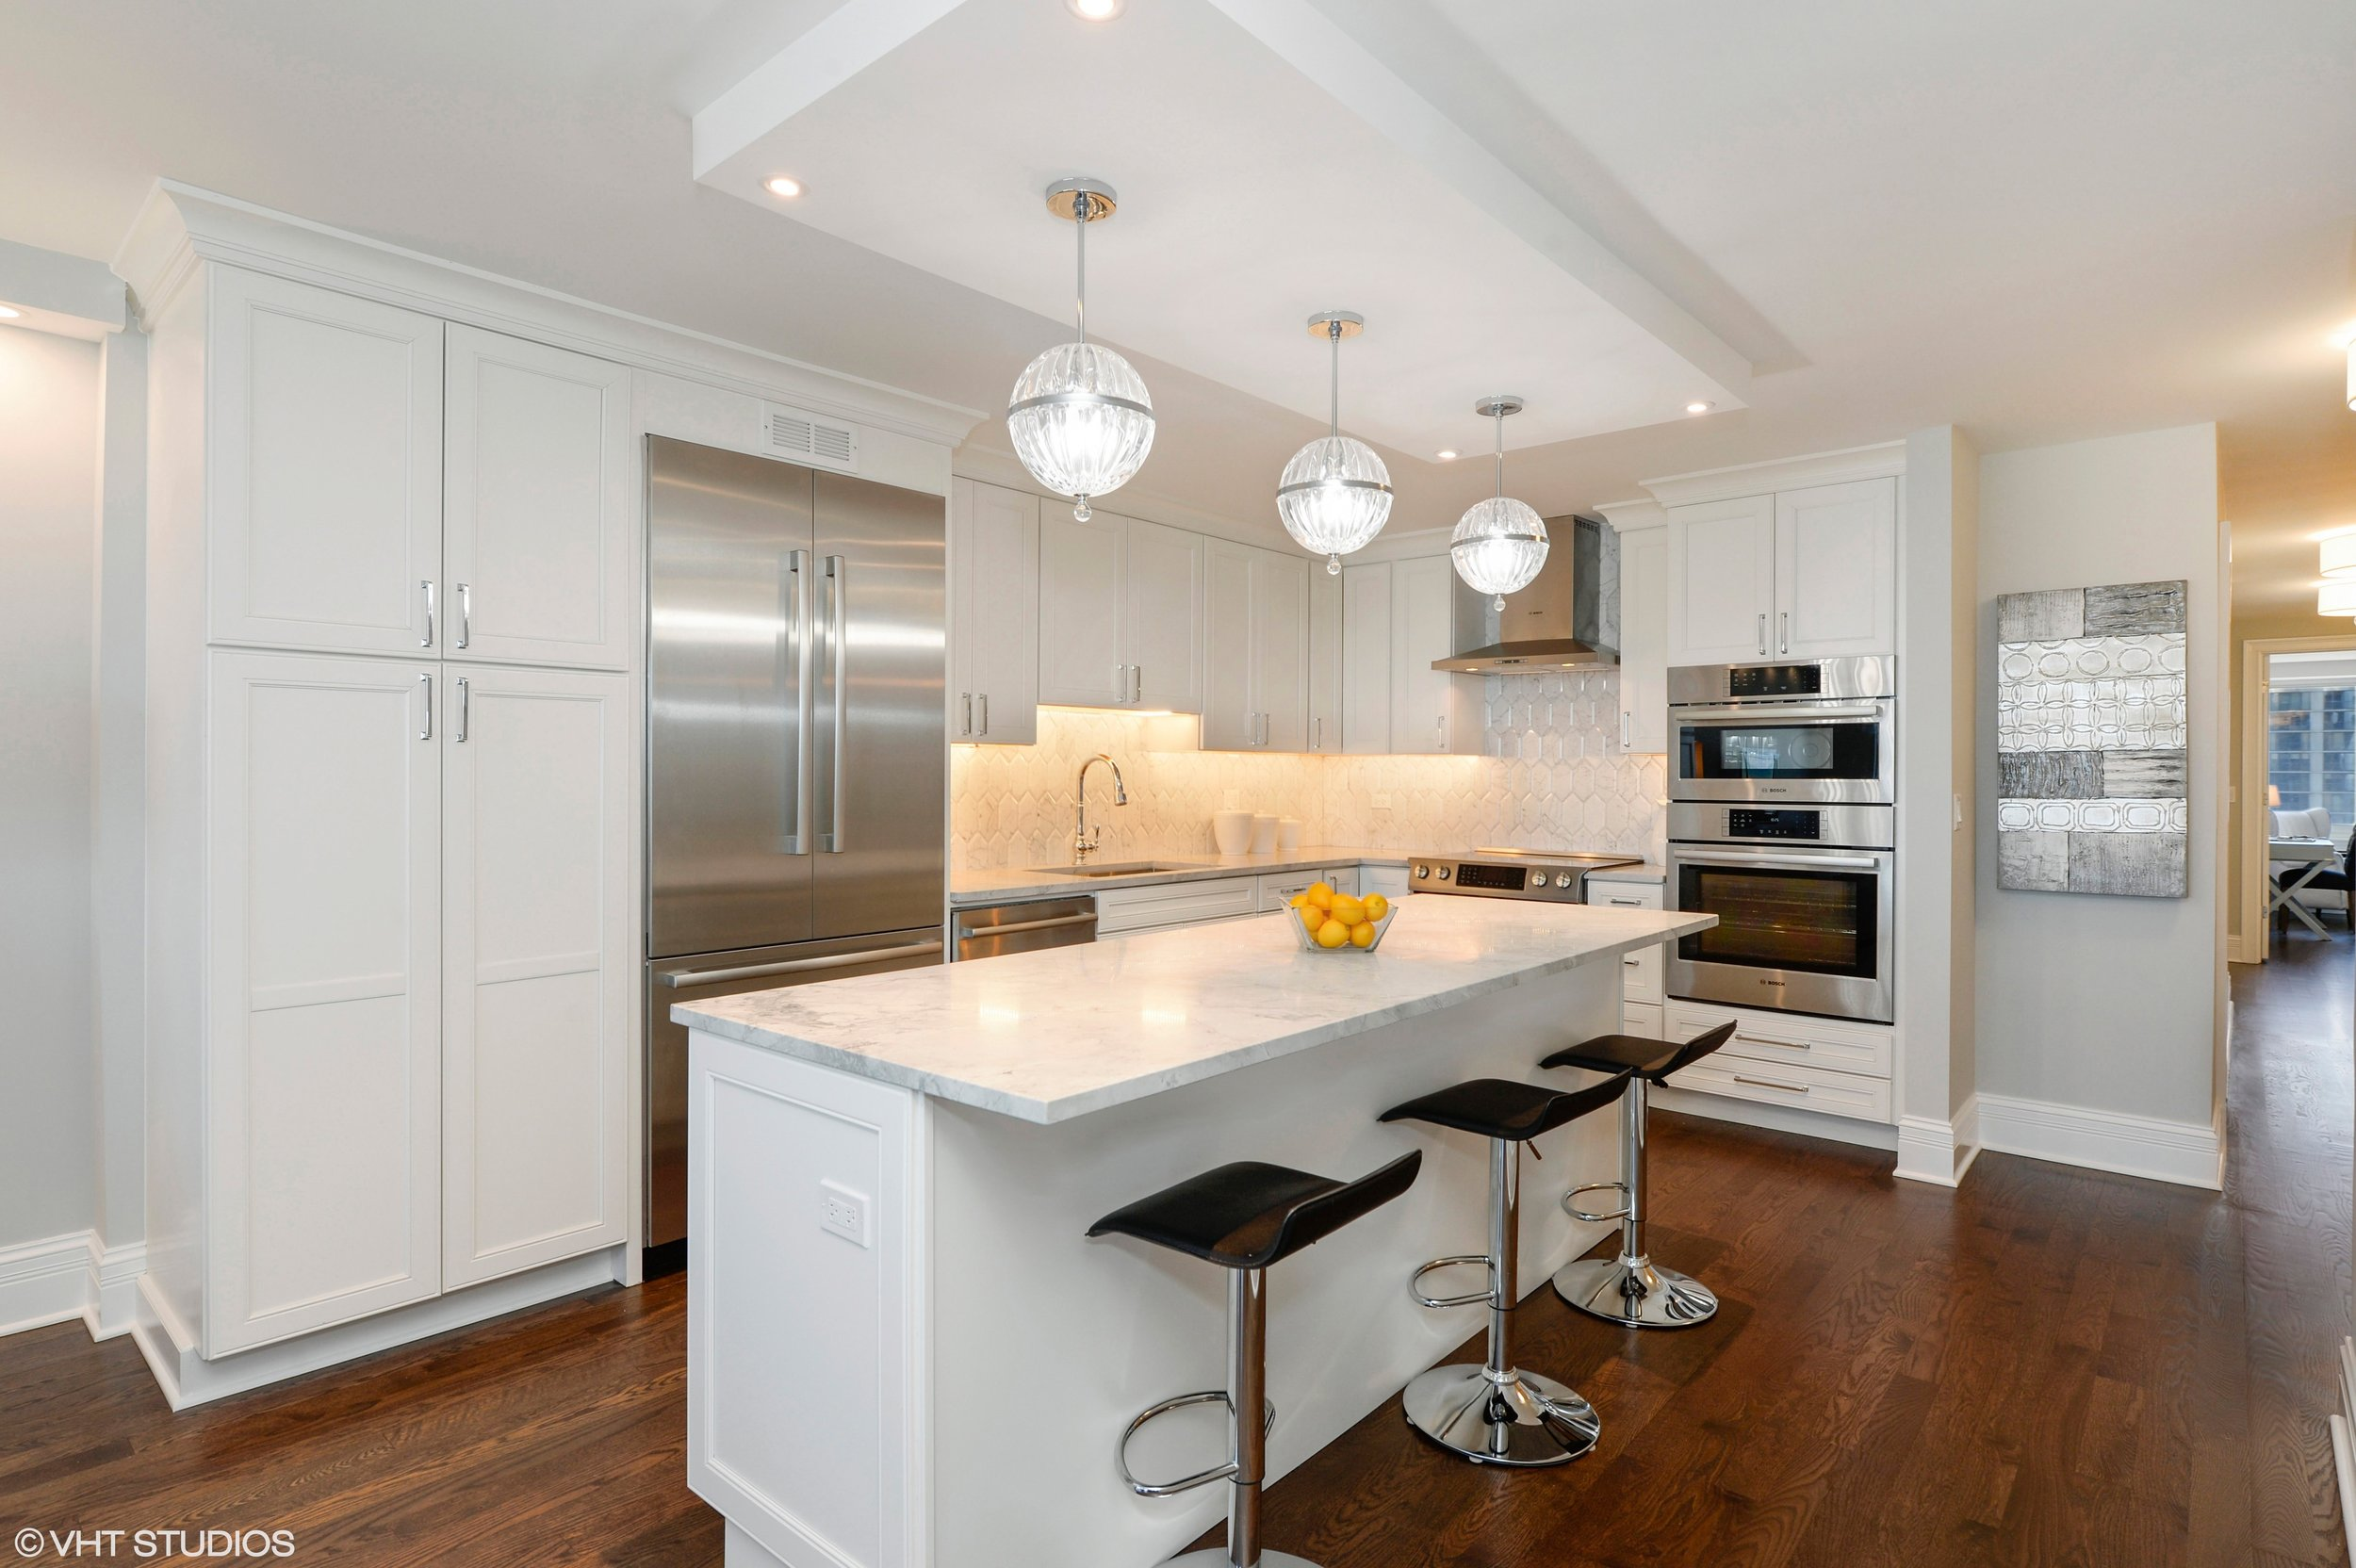 05_1440NorthLakeShoreDr_18EF_5_Kitchen_HiRes.jpg